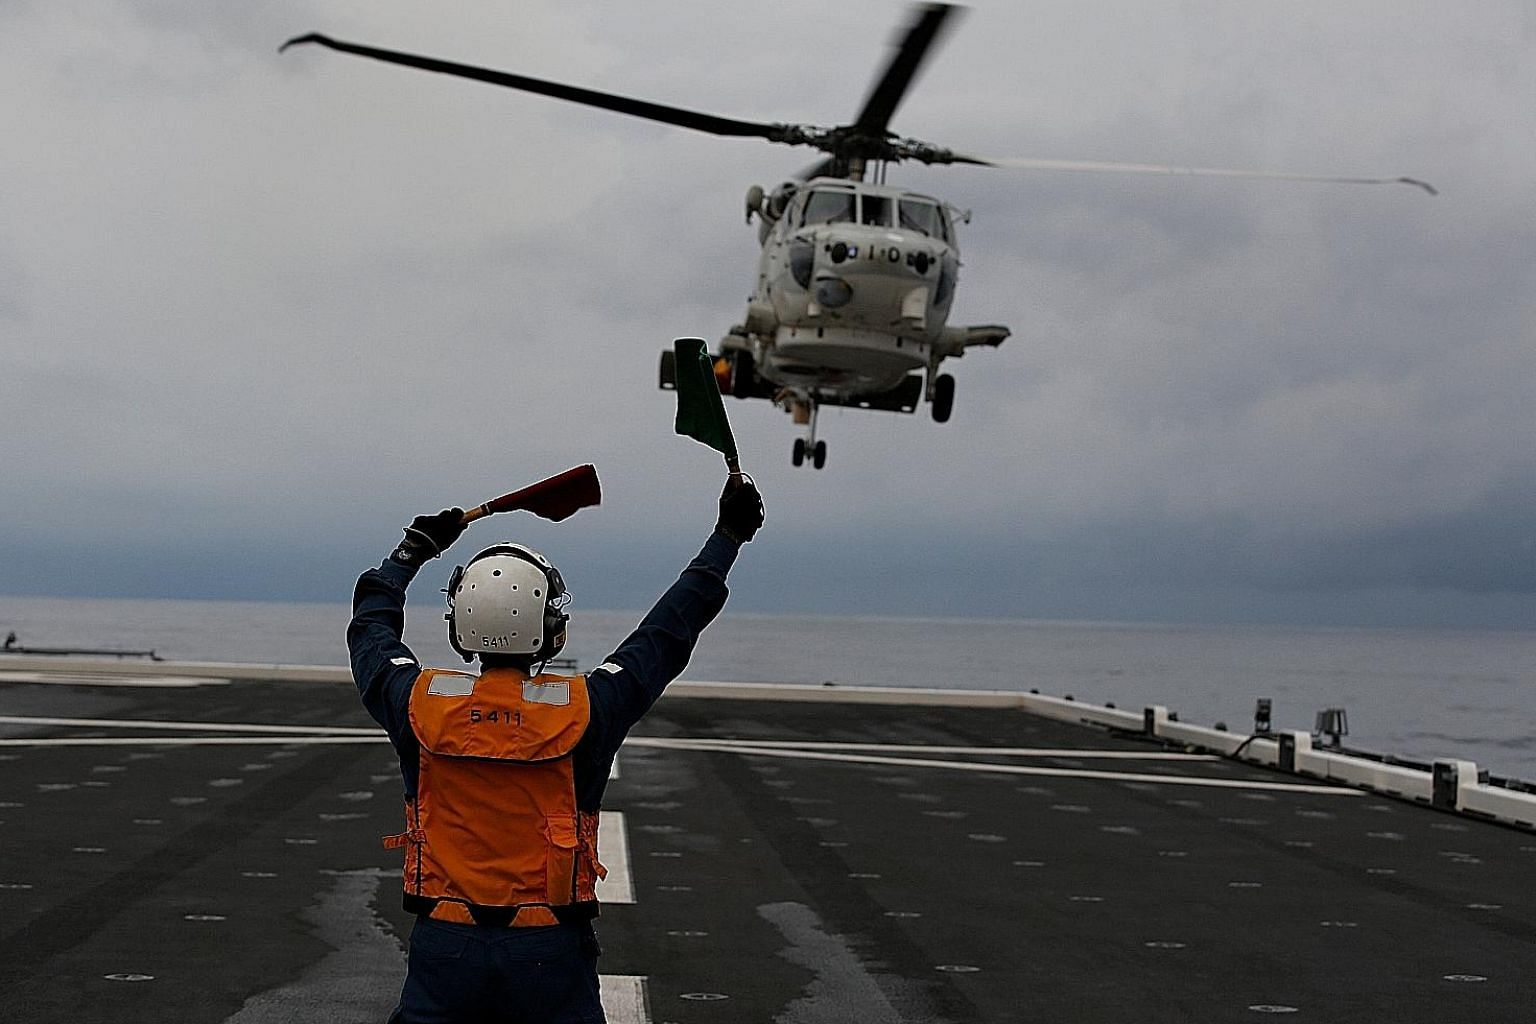 As part of Japan's new five-year defence guidelines, its two Izumo-class helicopter destroyers will be modified into the nation's first aircraft carriers since World War II.